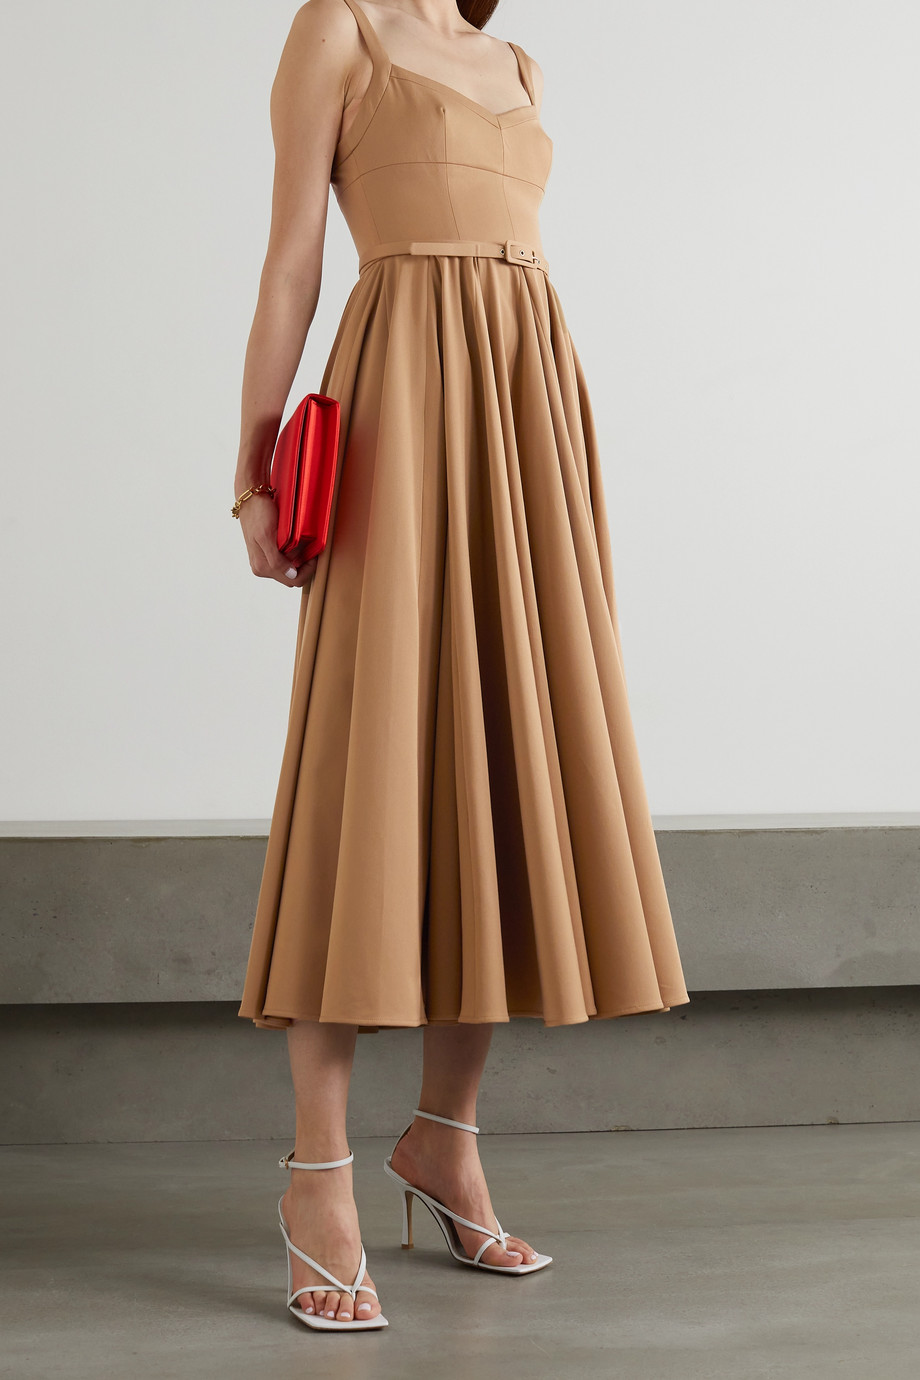 EMILIA WICKSTEAD Elita belted pleated stretch-cady midi dress